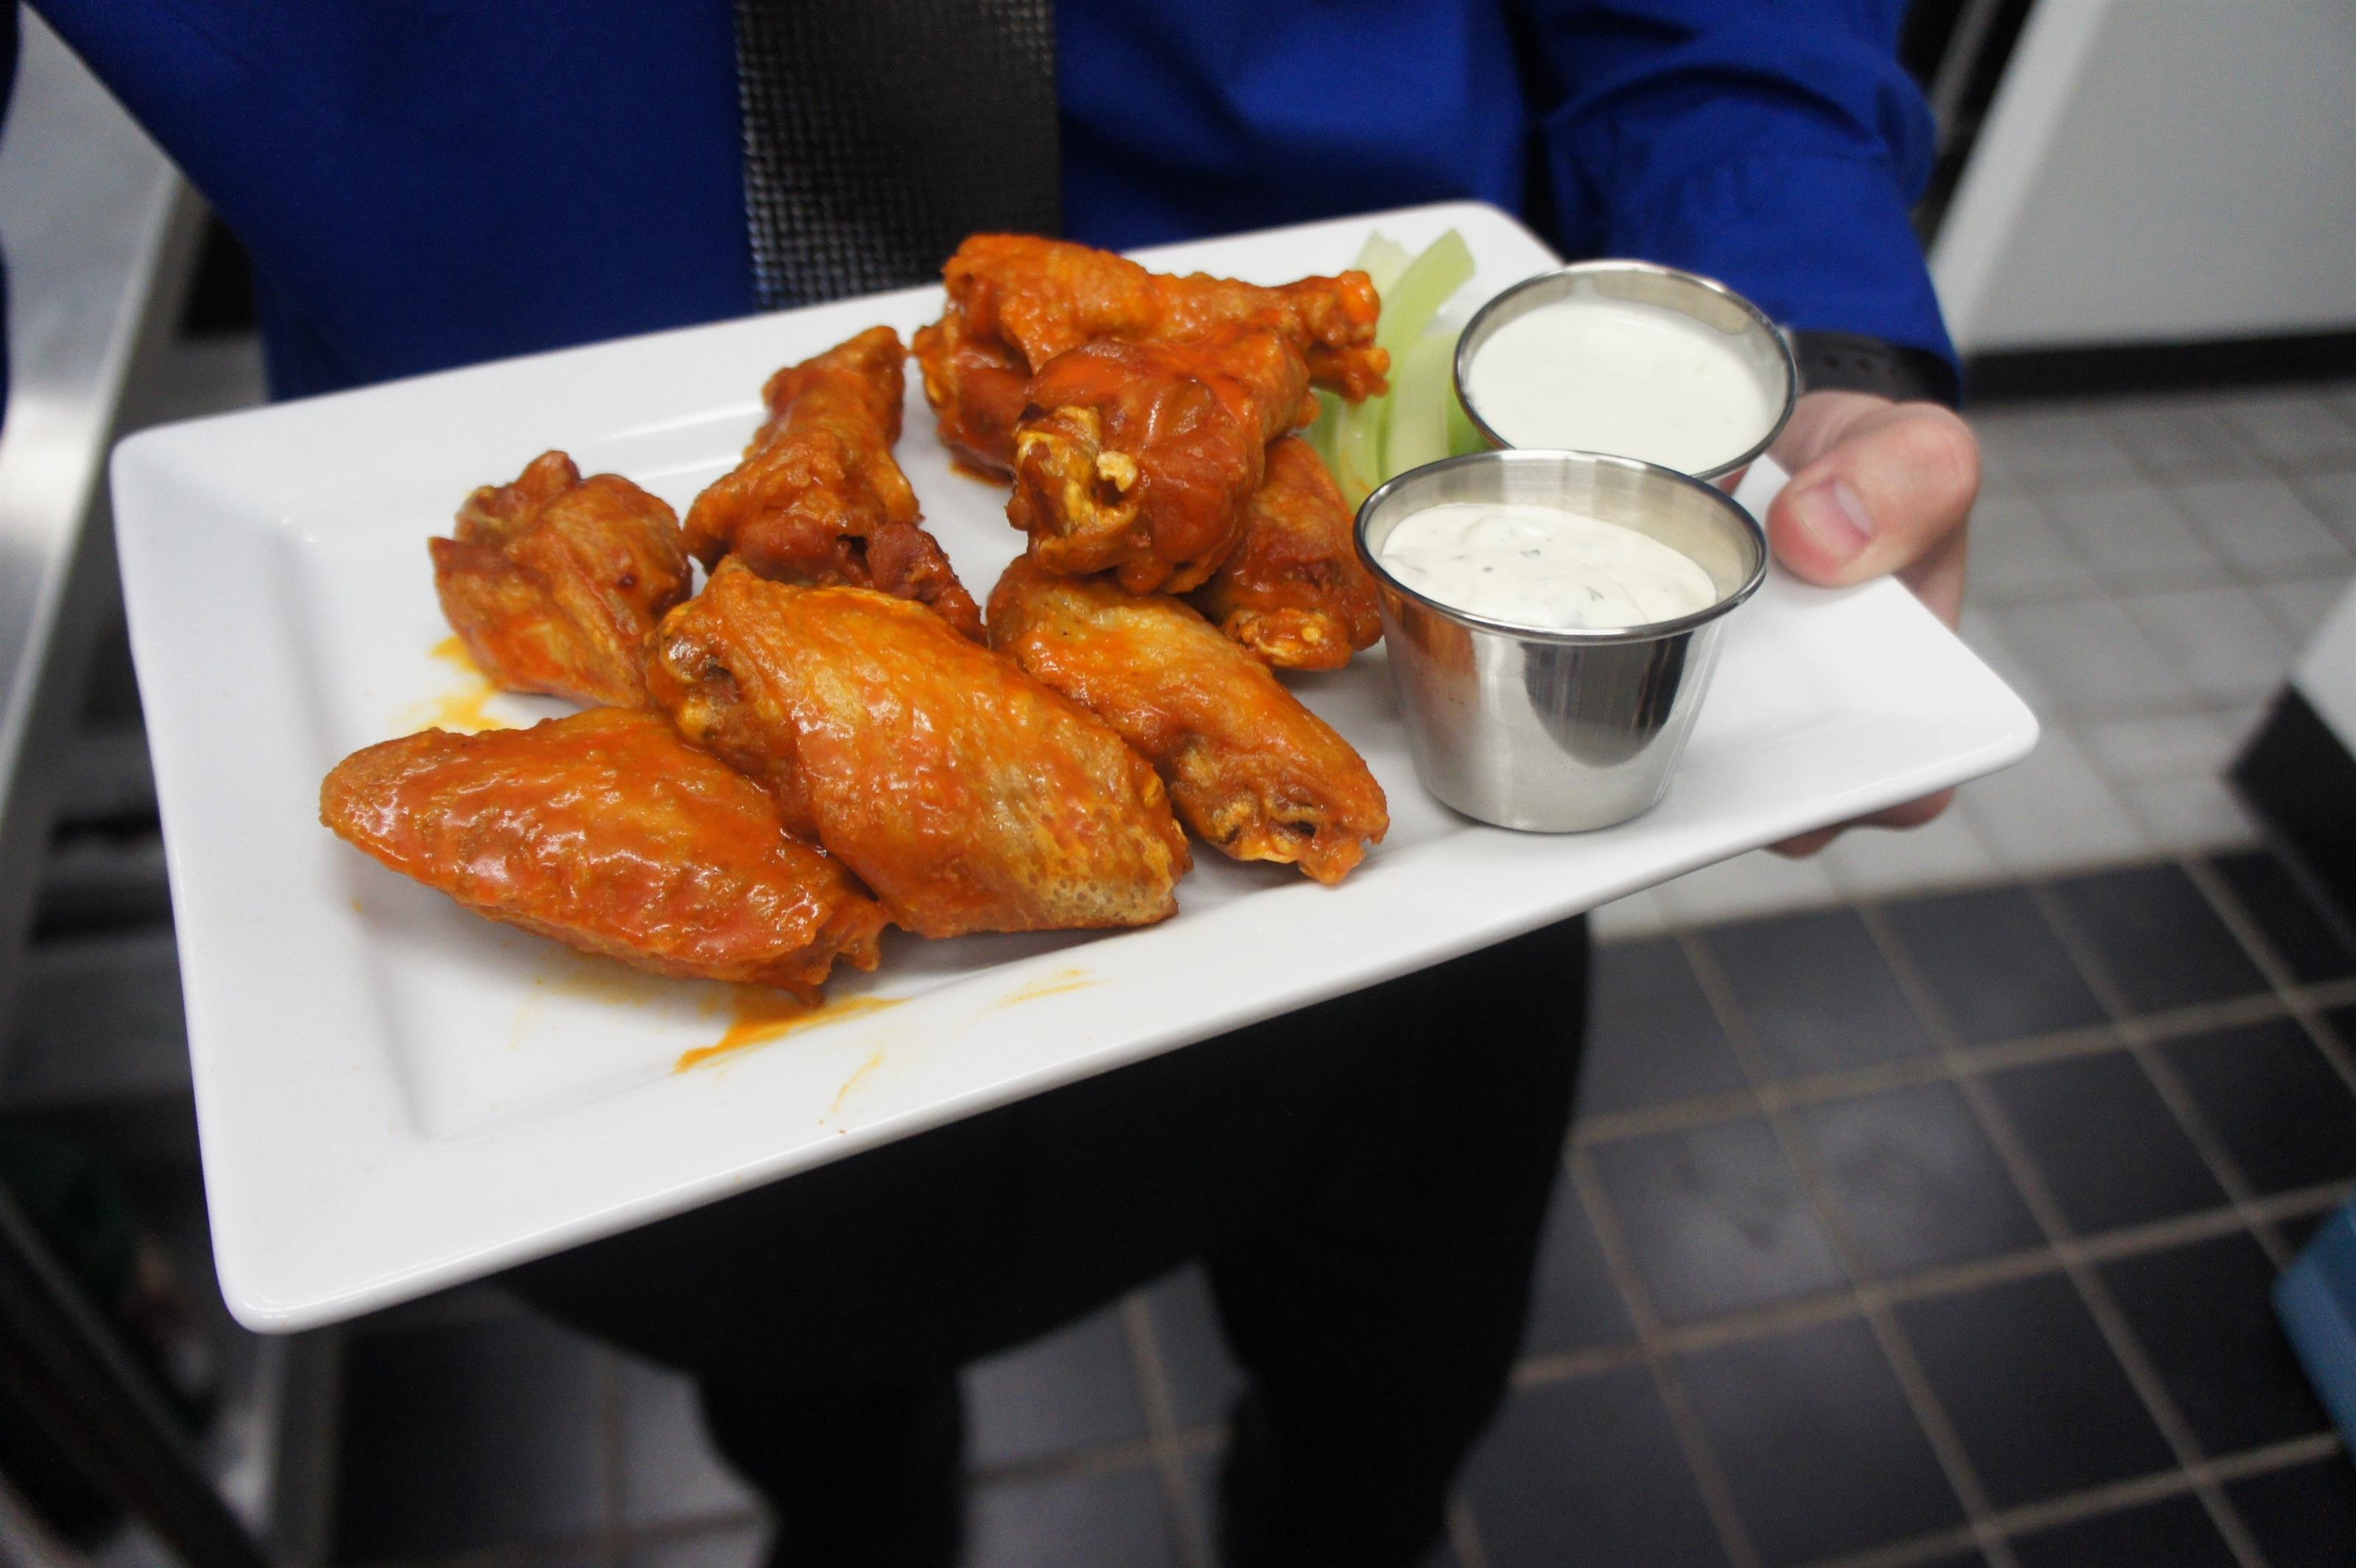 Chicken wings served with sides of ranch dressign with cellery. Served on a white platter.